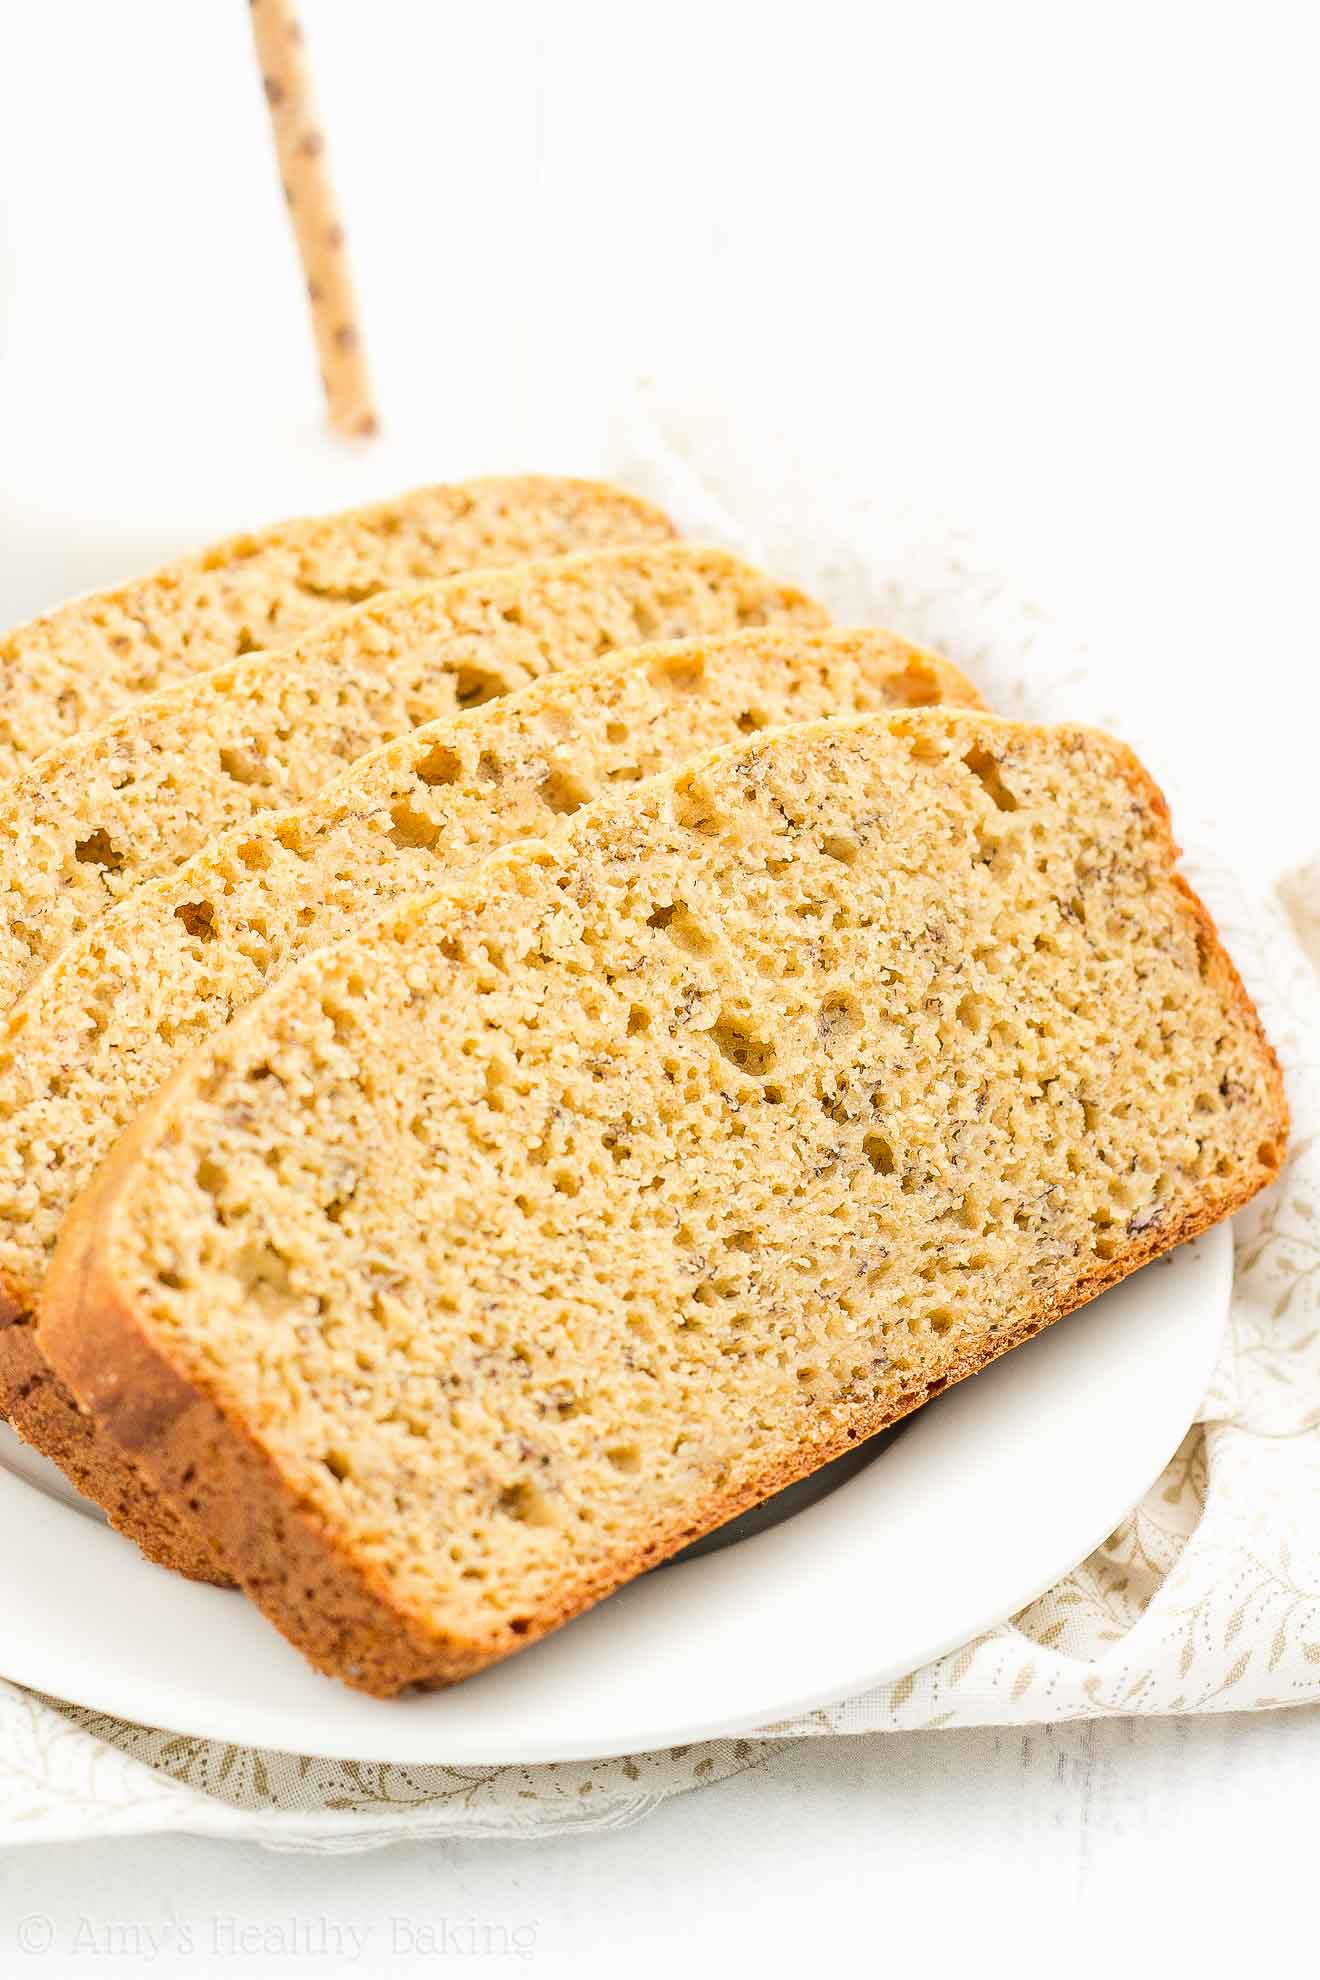 The Best Easy Healthy Banana Bread Recipe made with Greek yogurt